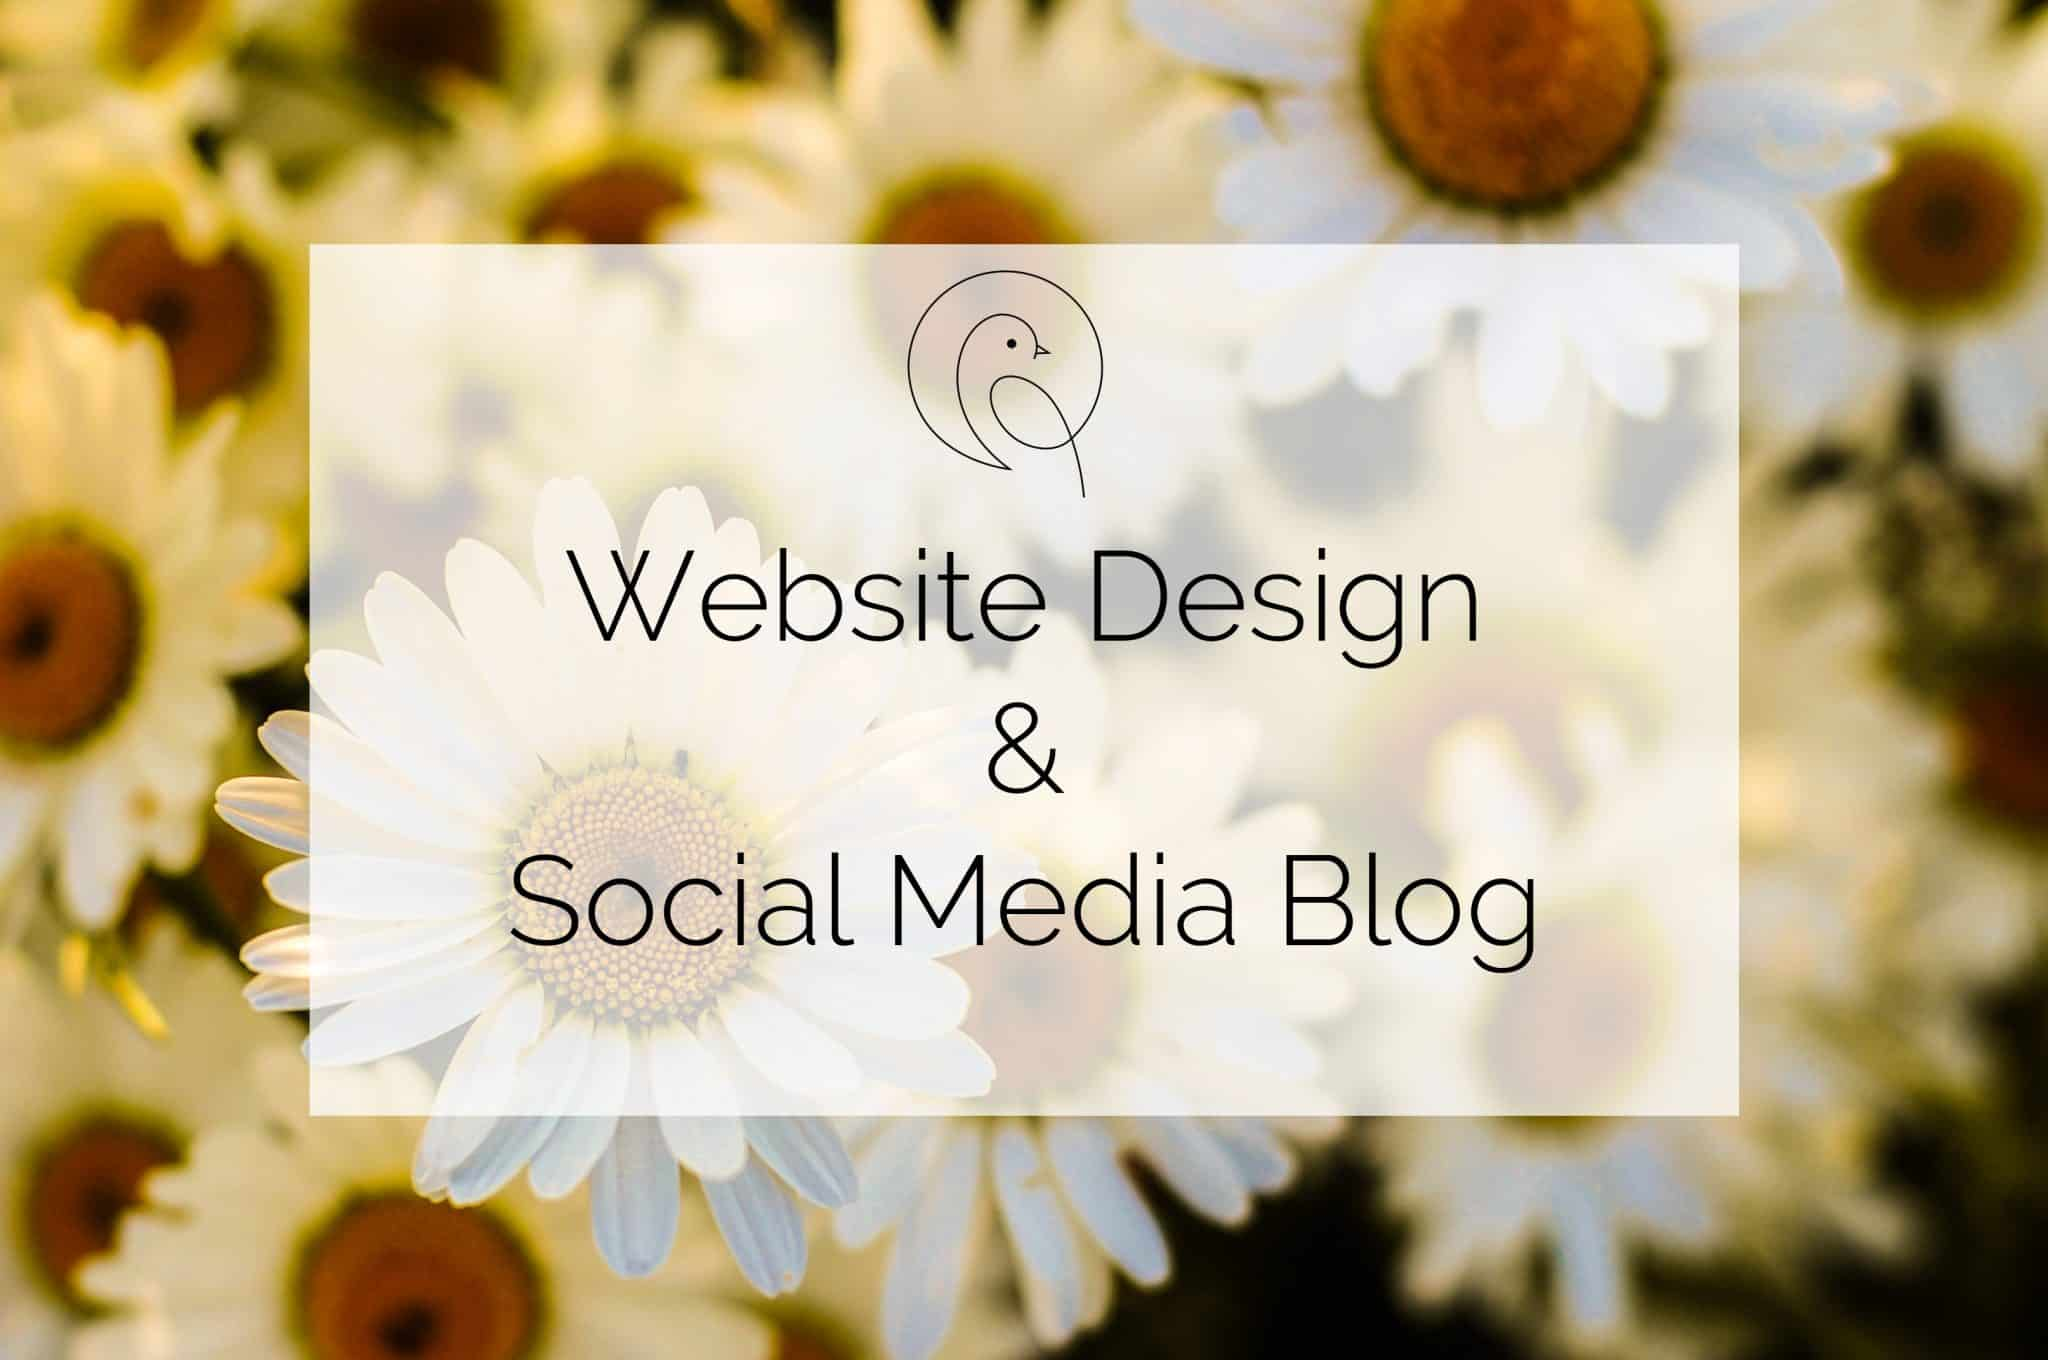 Website Deisgn and Social Media Blog